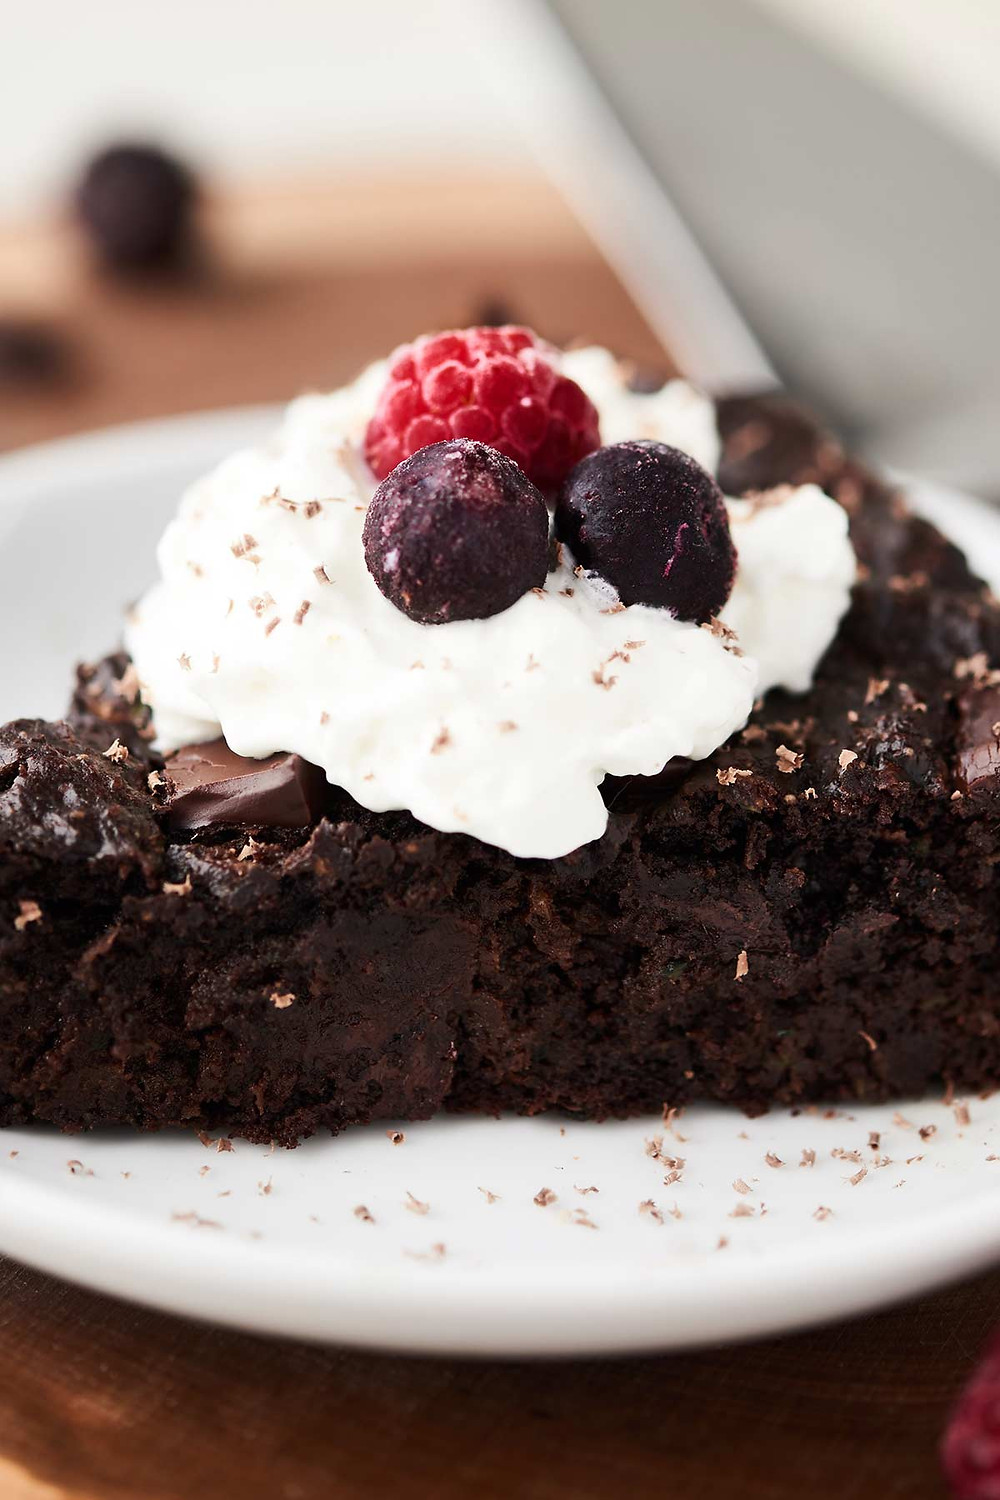 healthy chocolate zucchini cake with berries on top